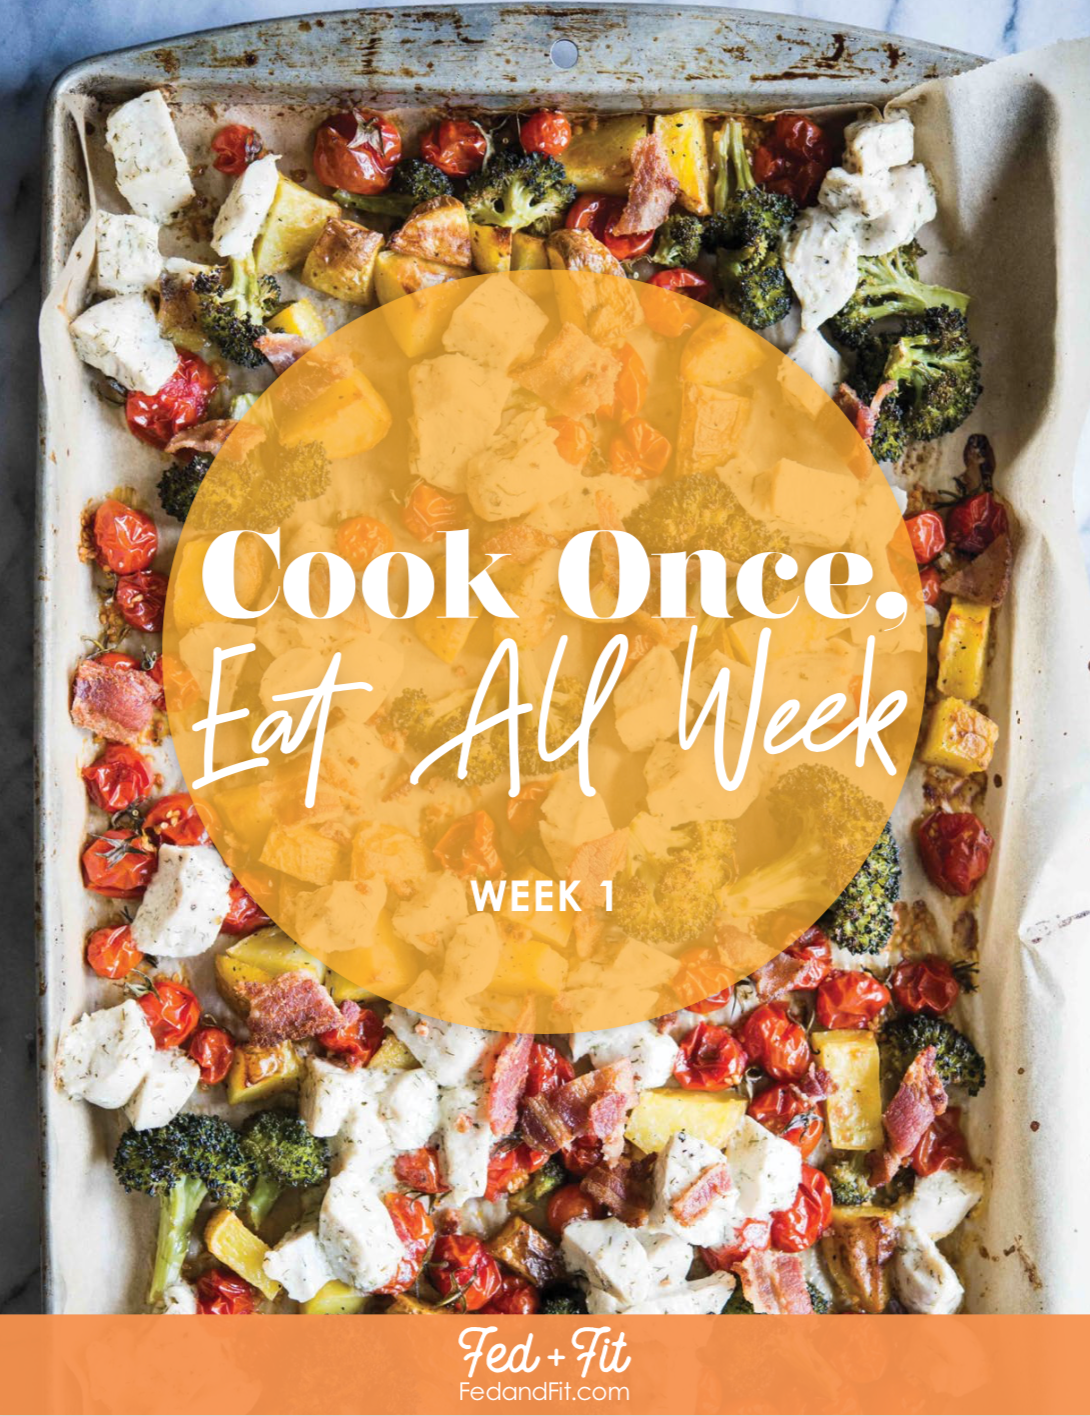 The Cook Once, Eat All Week 5-Day Meal Planning Series